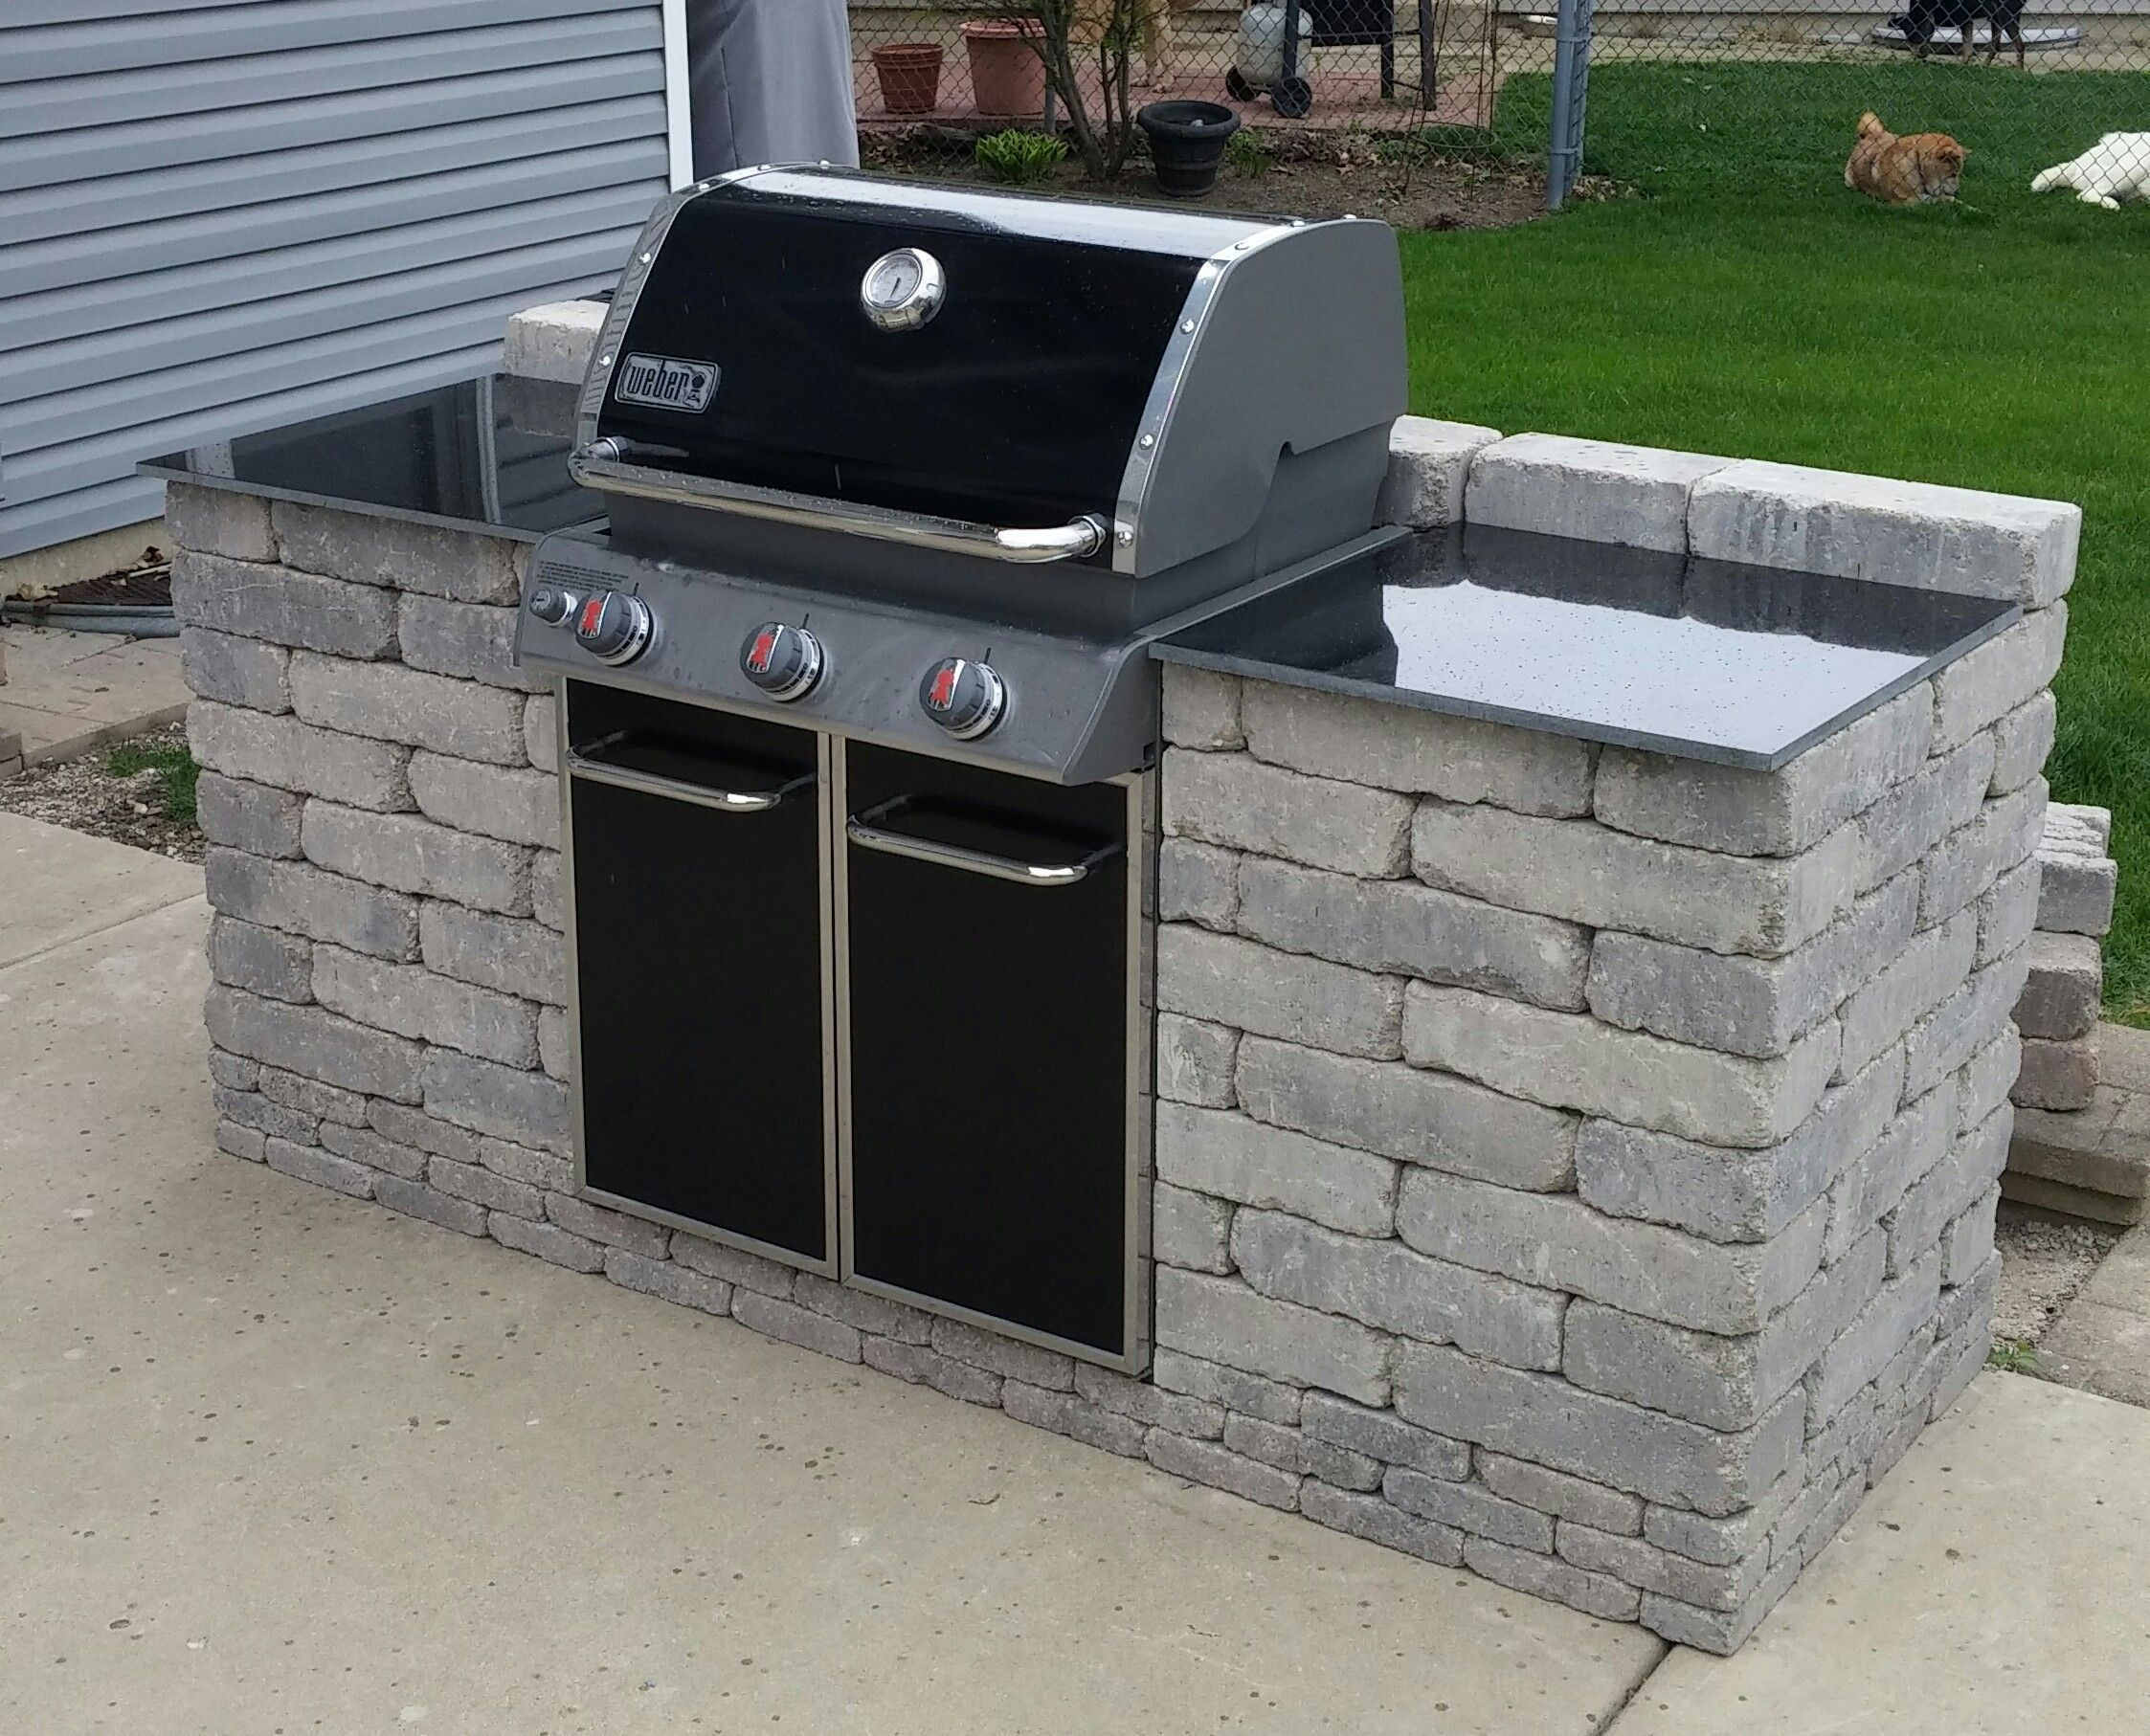 Barbeque Grill Enclosure Outdoor Kitchen Countertops